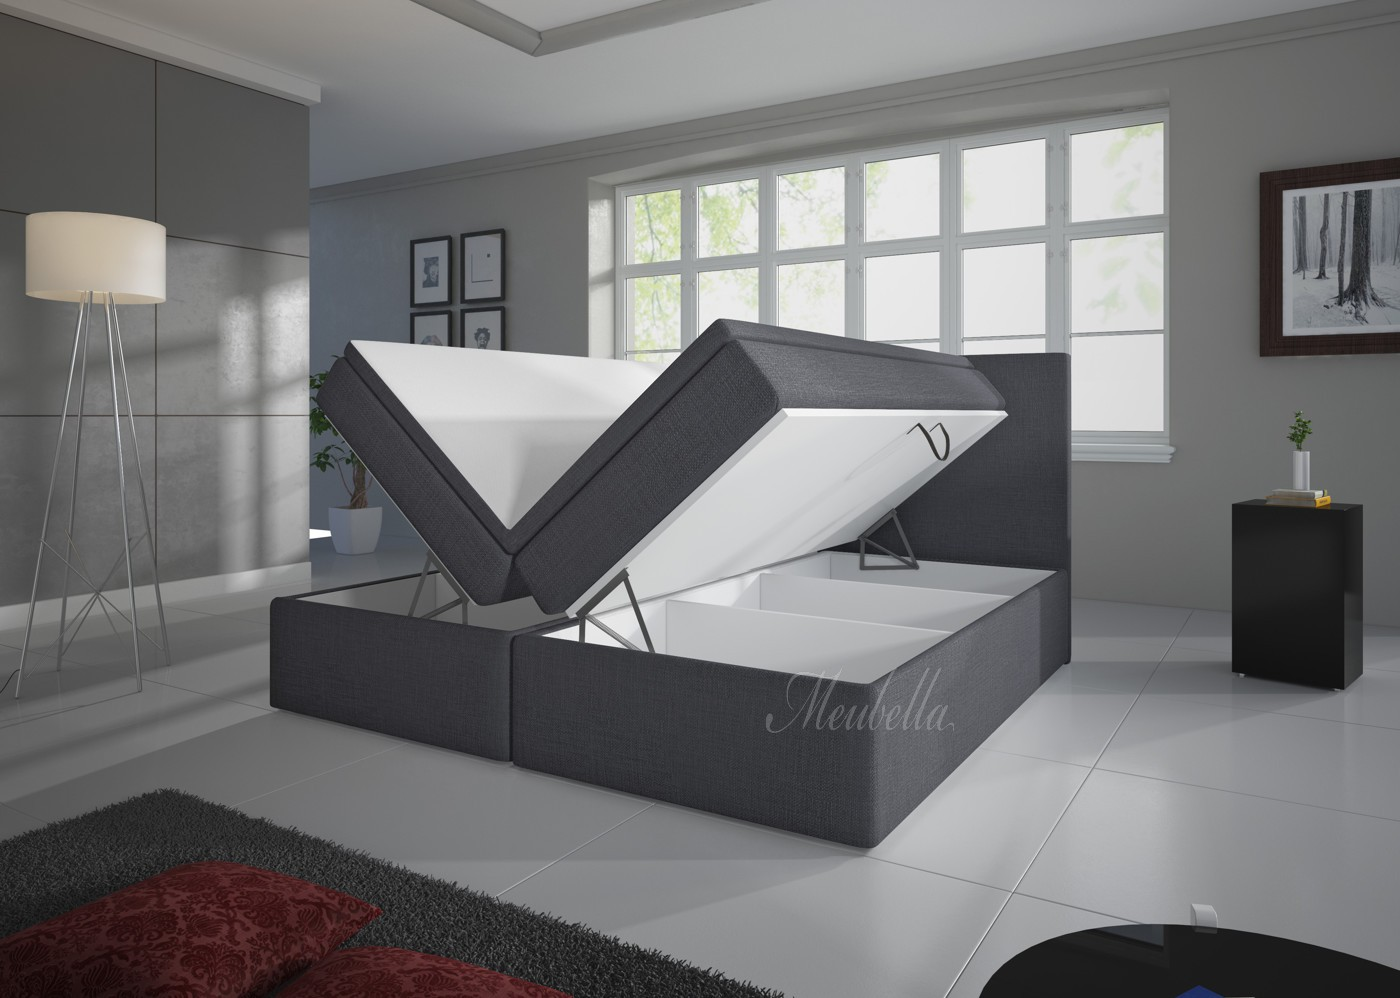 stauraum bett 160x200 betten mit stauraum bettkasten und. Black Bedroom Furniture Sets. Home Design Ideas